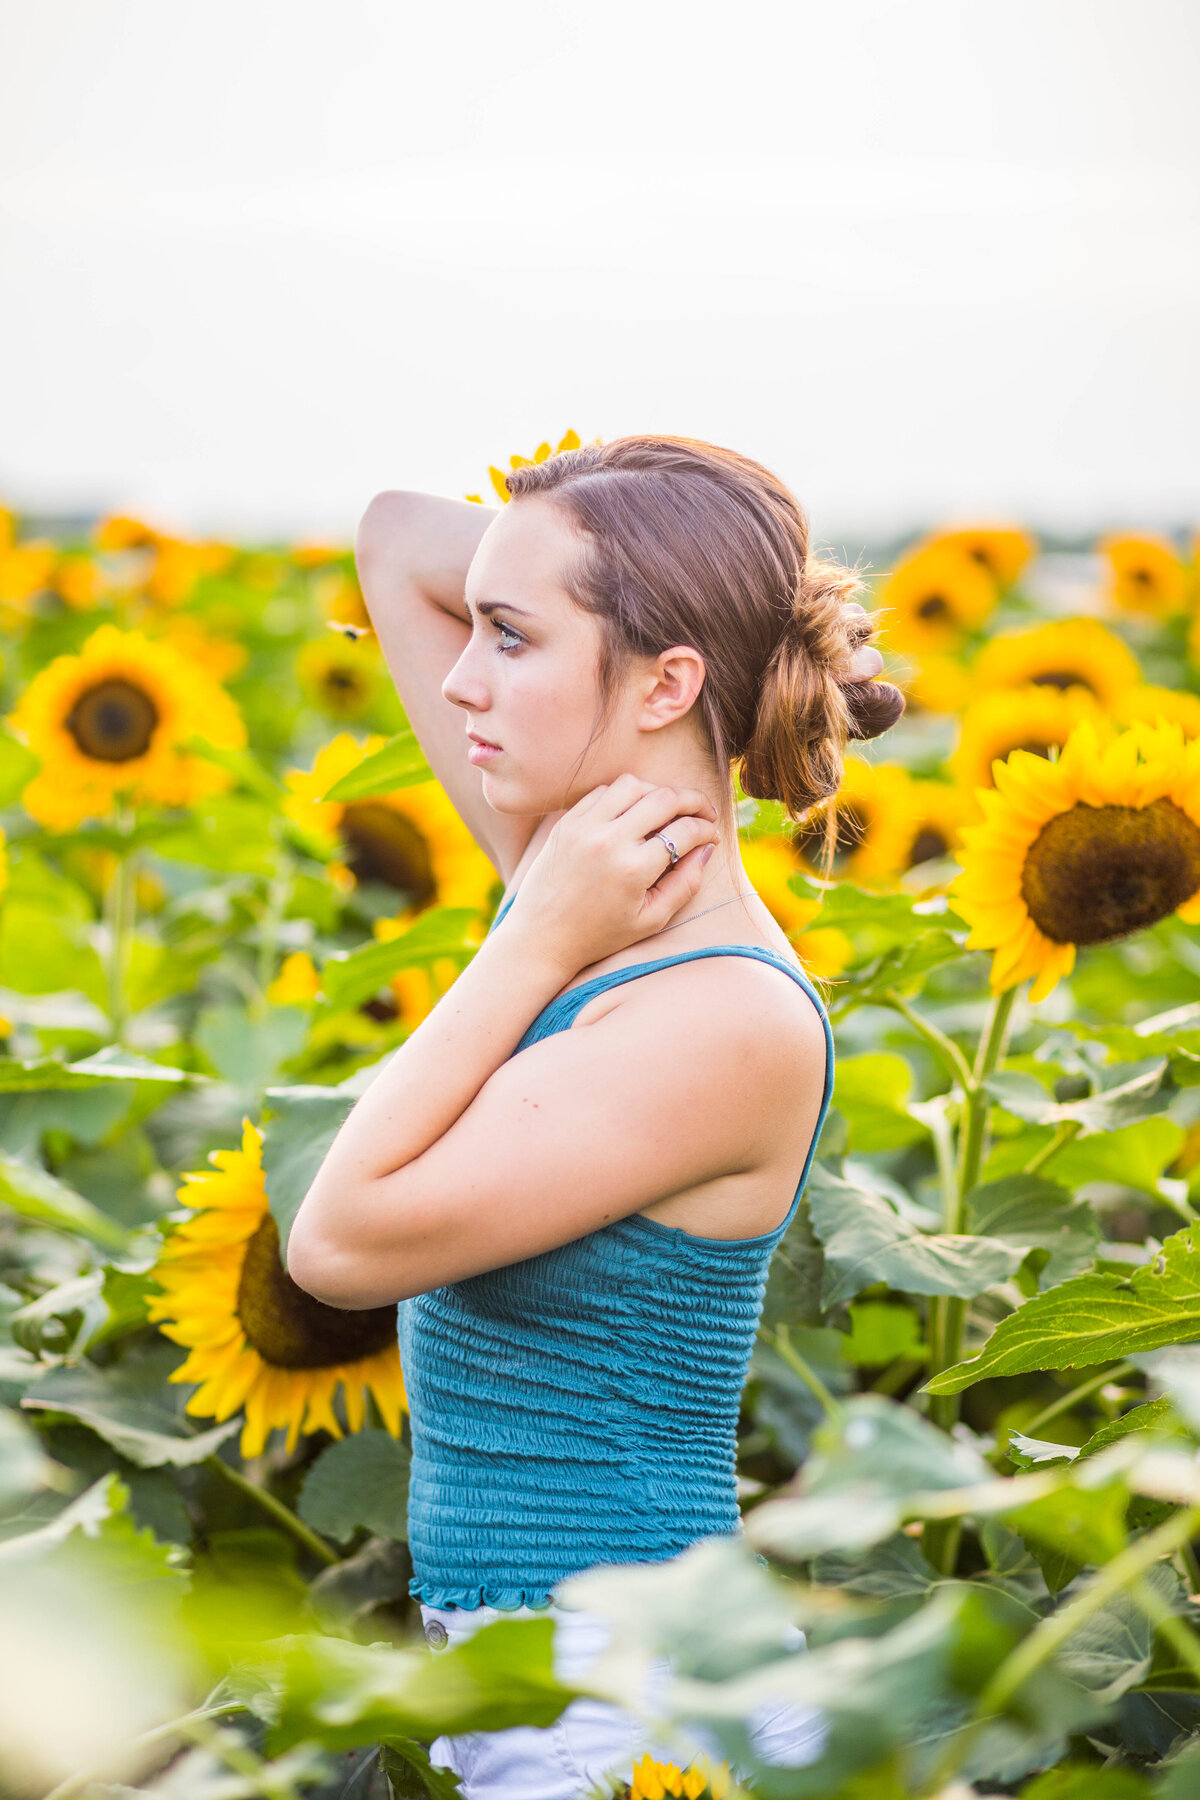 Victor-New-York-Teen-pictures-sunflowers-Carrie-Eigbrett-Photography-3004